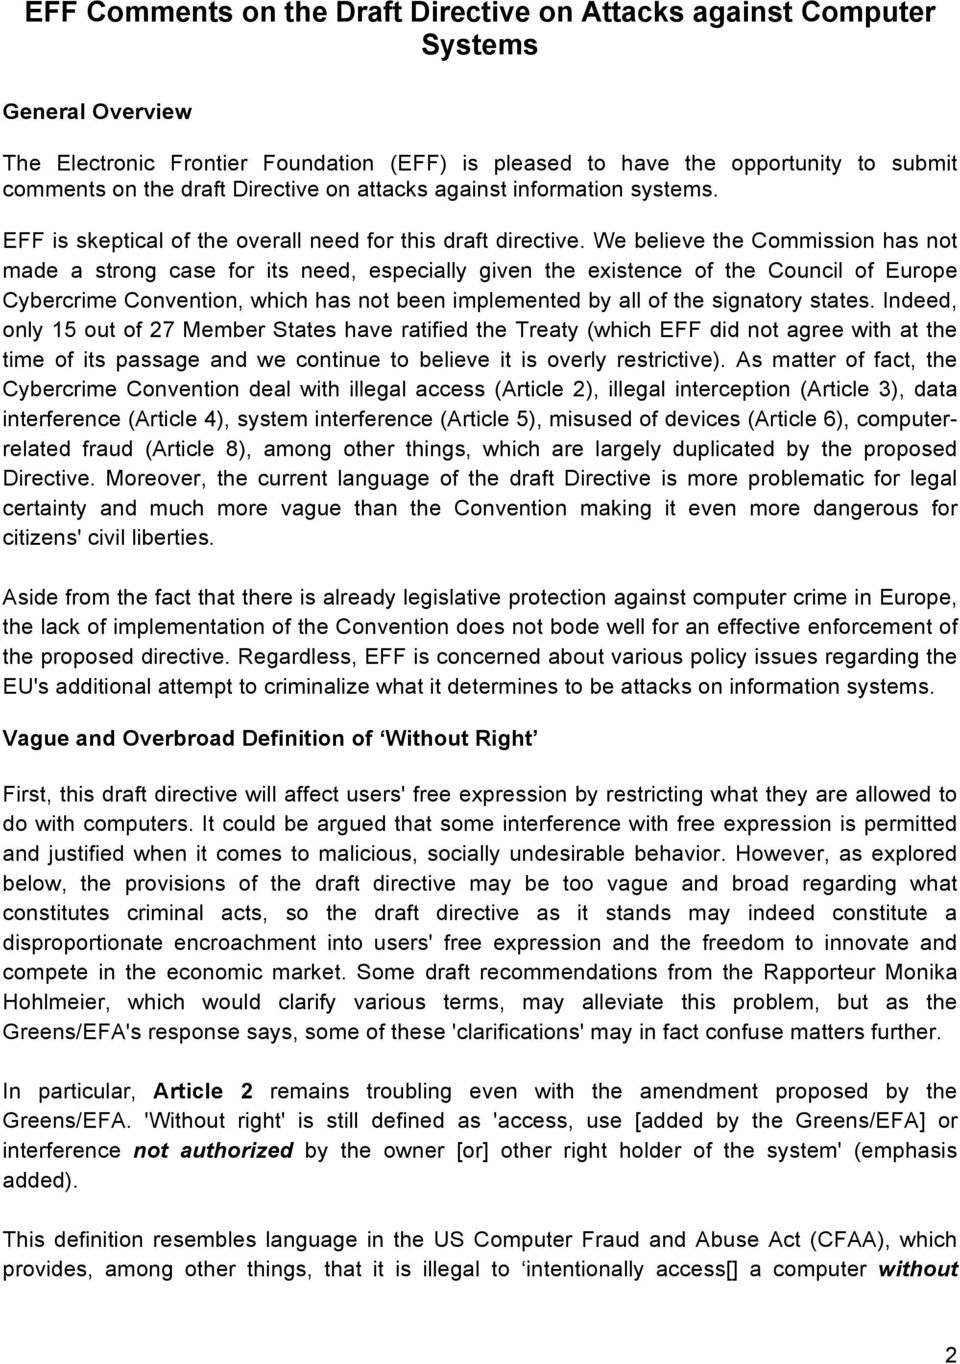 We believe the Commission has not made a strong case for its need, especially given the existence of the Council of Europe Cybercrime Convention, which has not been implemented by all of the